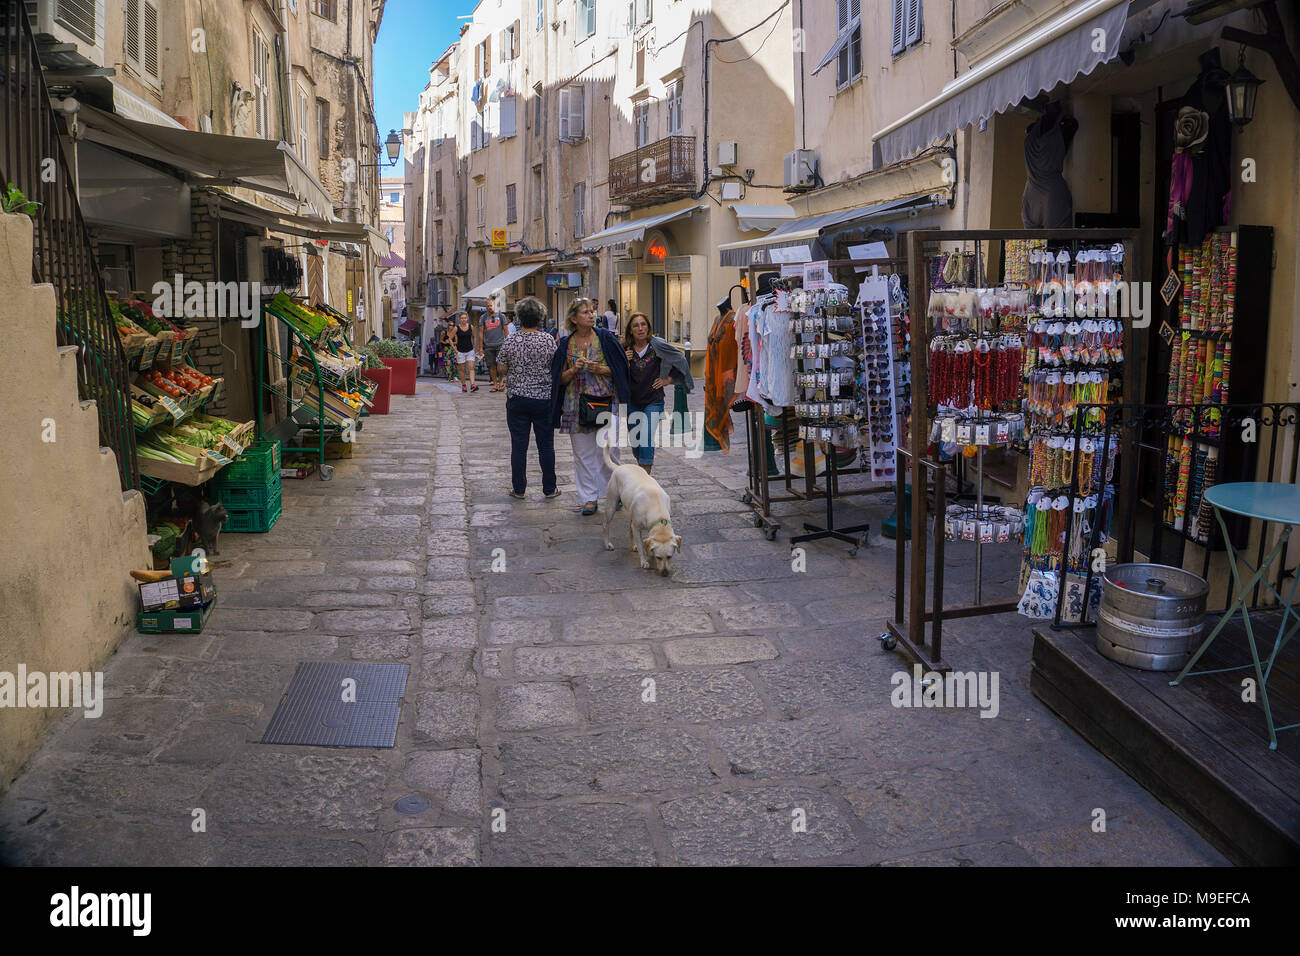 Souvenir shop and grocery at old town of Bonifacio, Corsica, France, Mediterranean, Europe - Stock Image